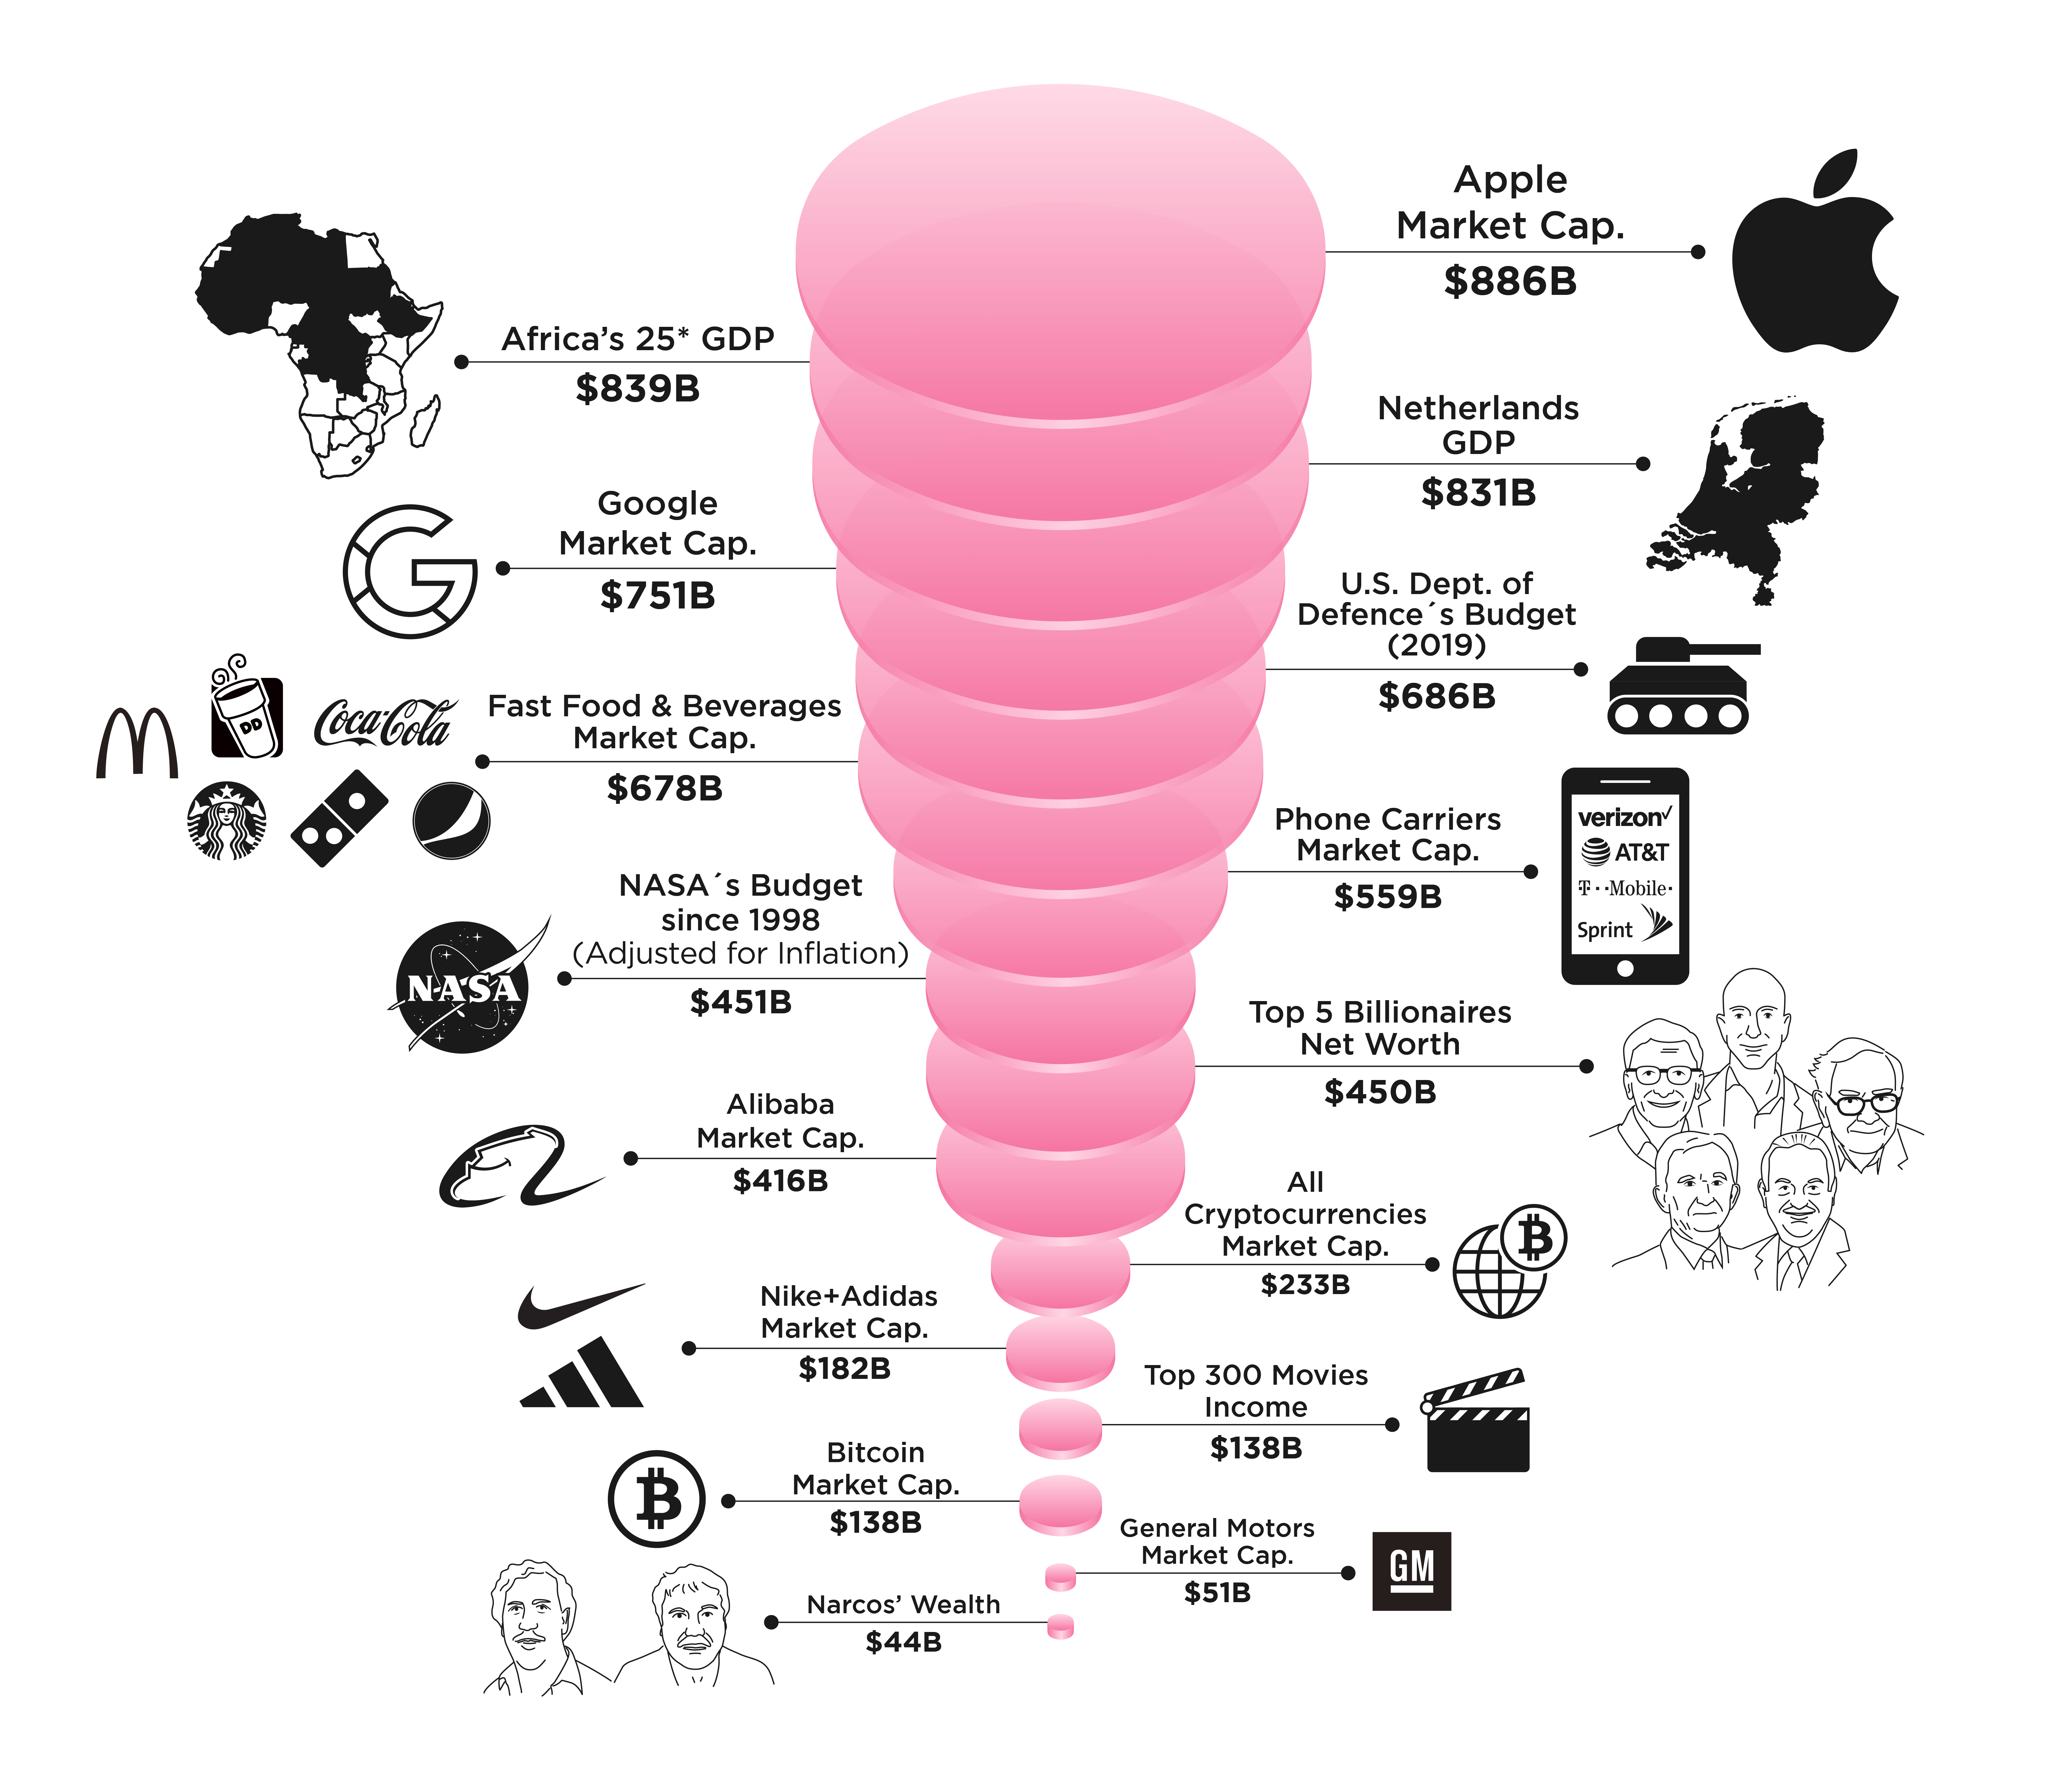 How Big is Apple? This Visualization Puts Apple's Market Cap Into Perspective